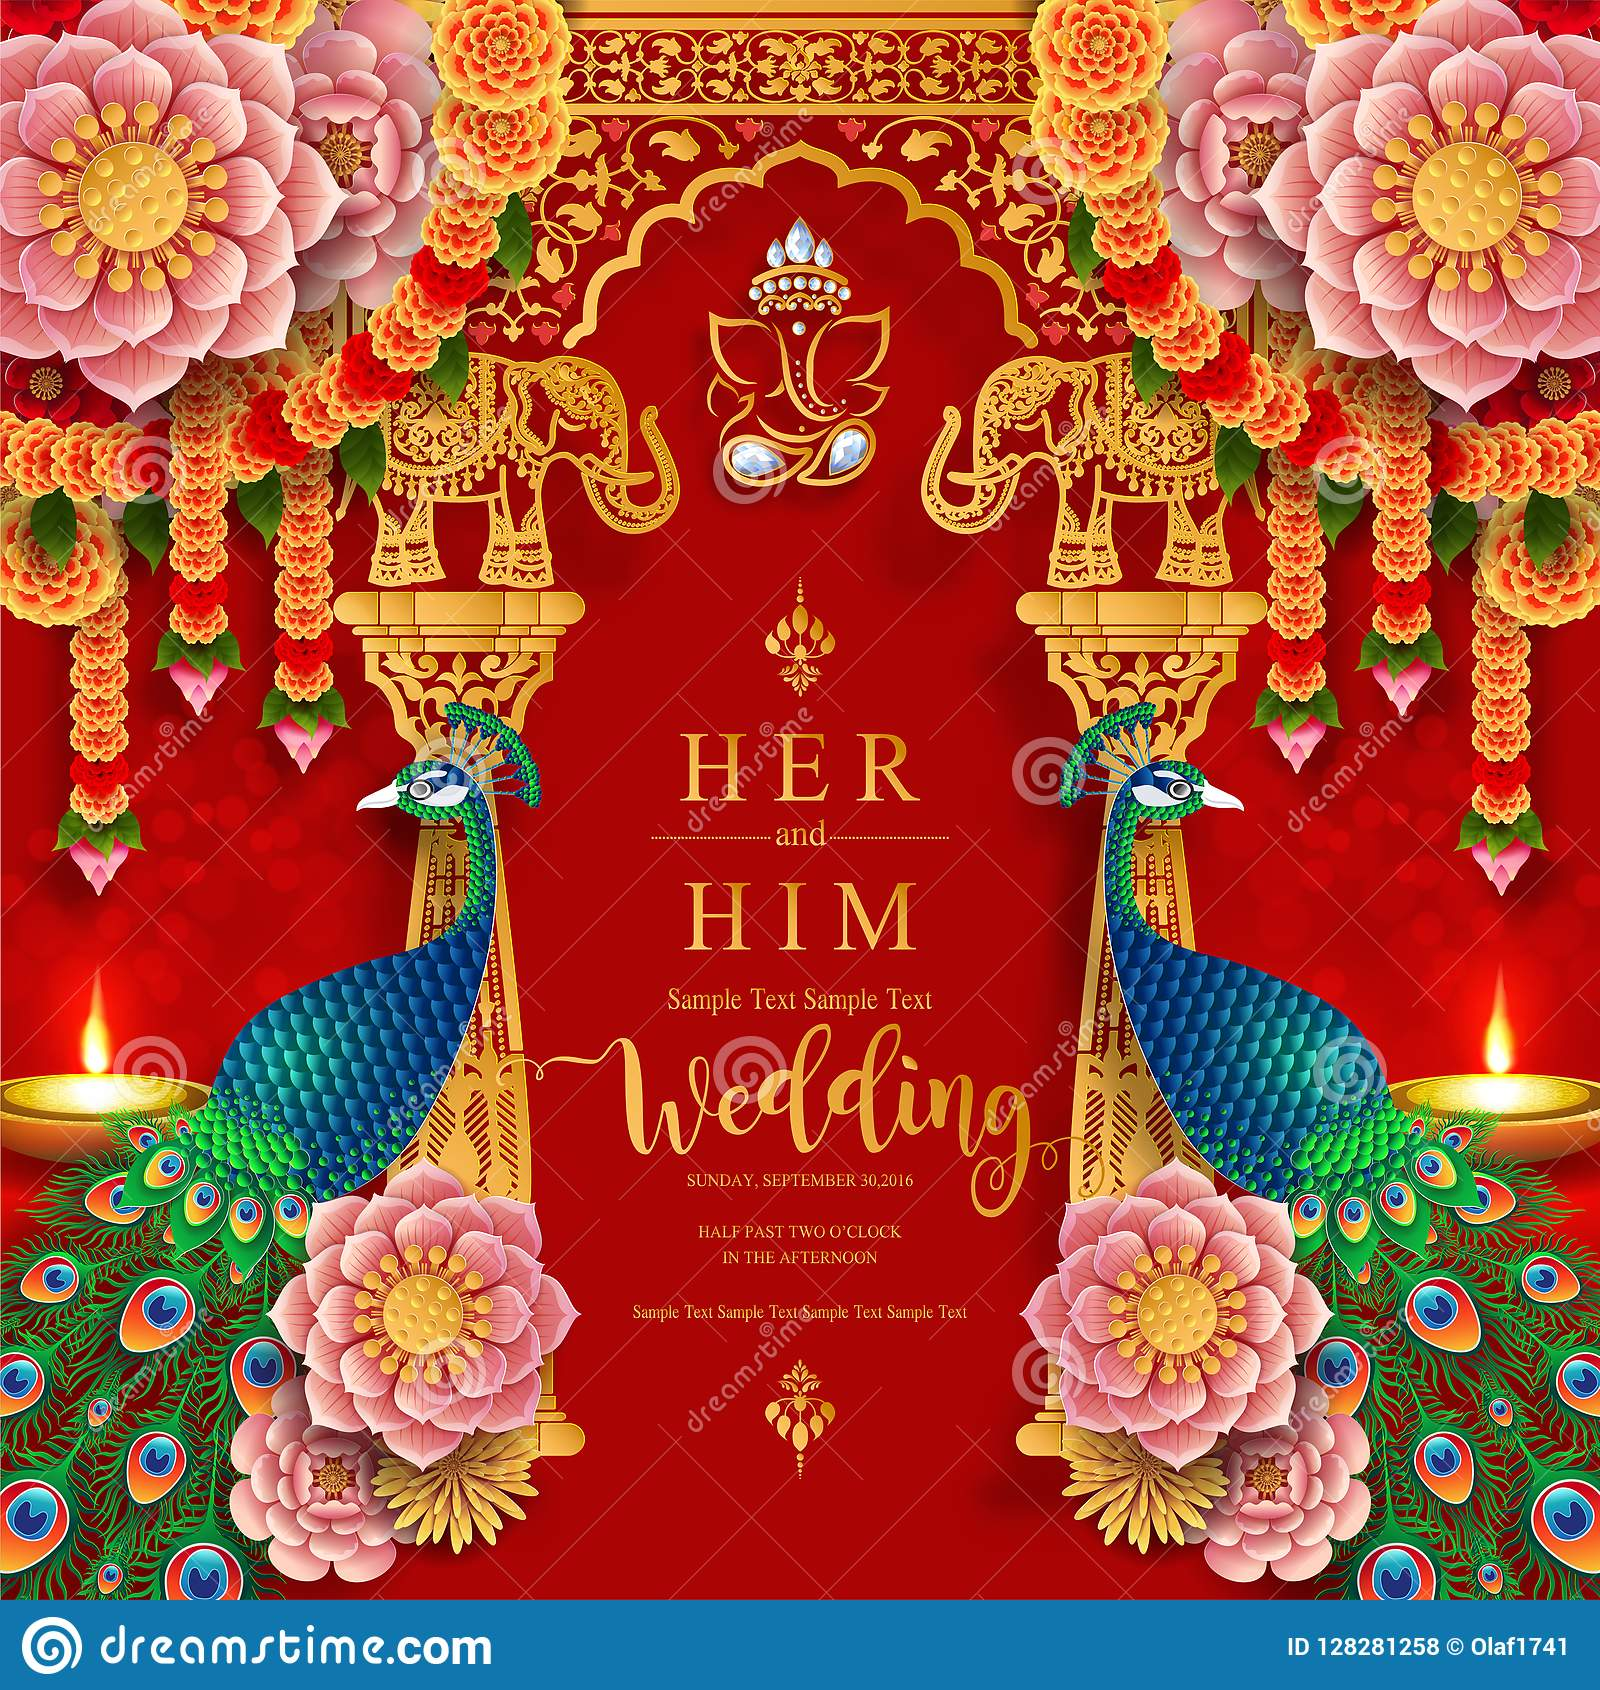 Indian Wedding Invitation Carddian Wedding Invitation Card Templates